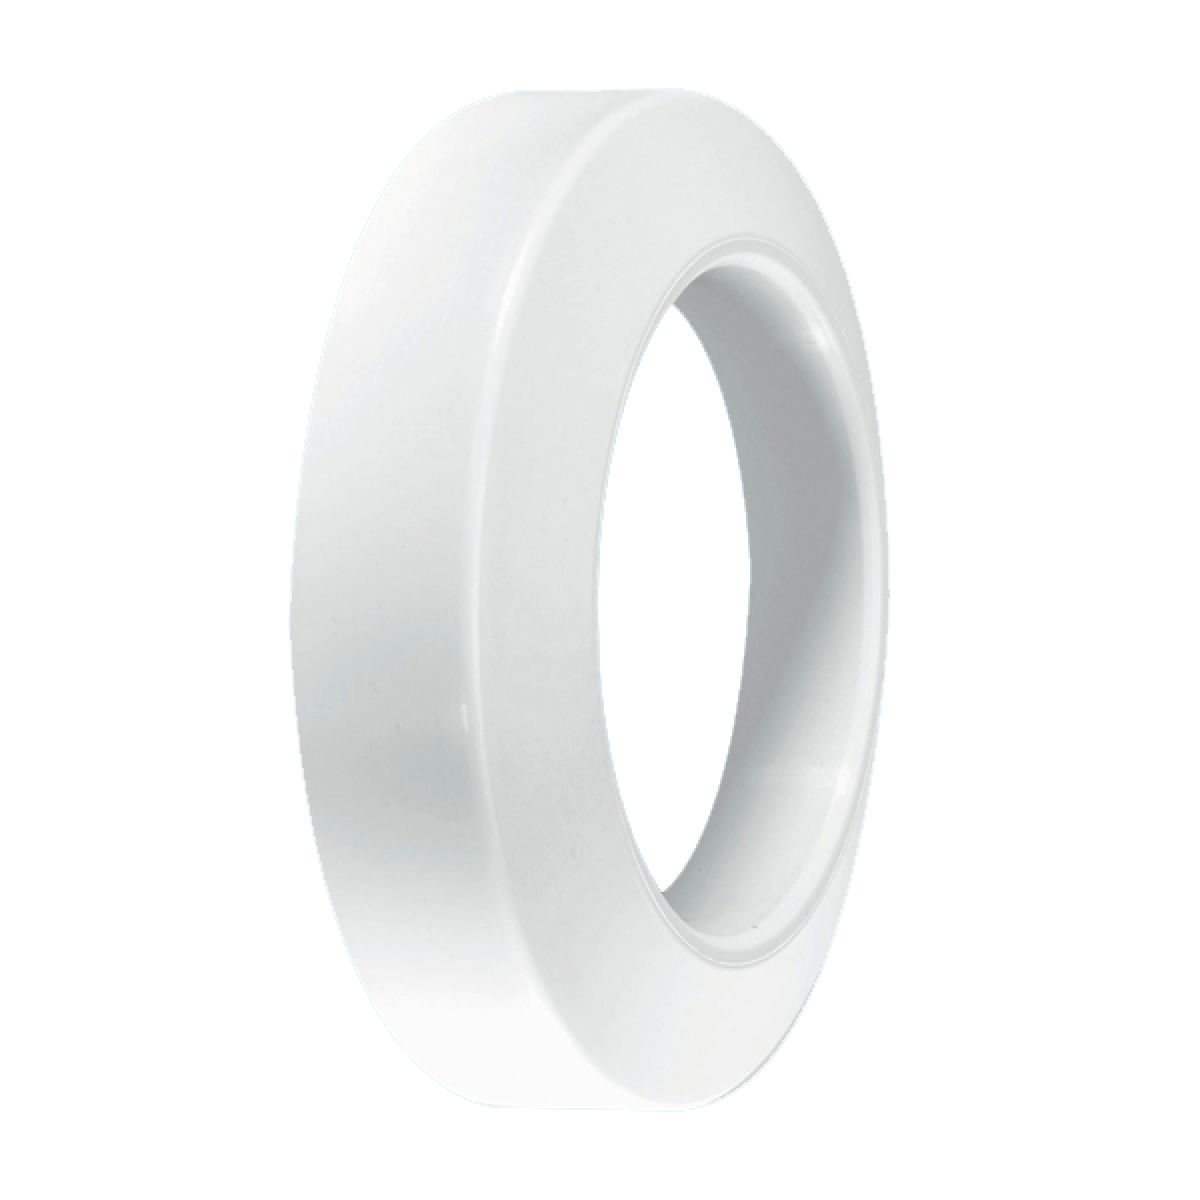 McAlpine WC17-114 WC Connector Wall Flange for Flexible WC Connectors